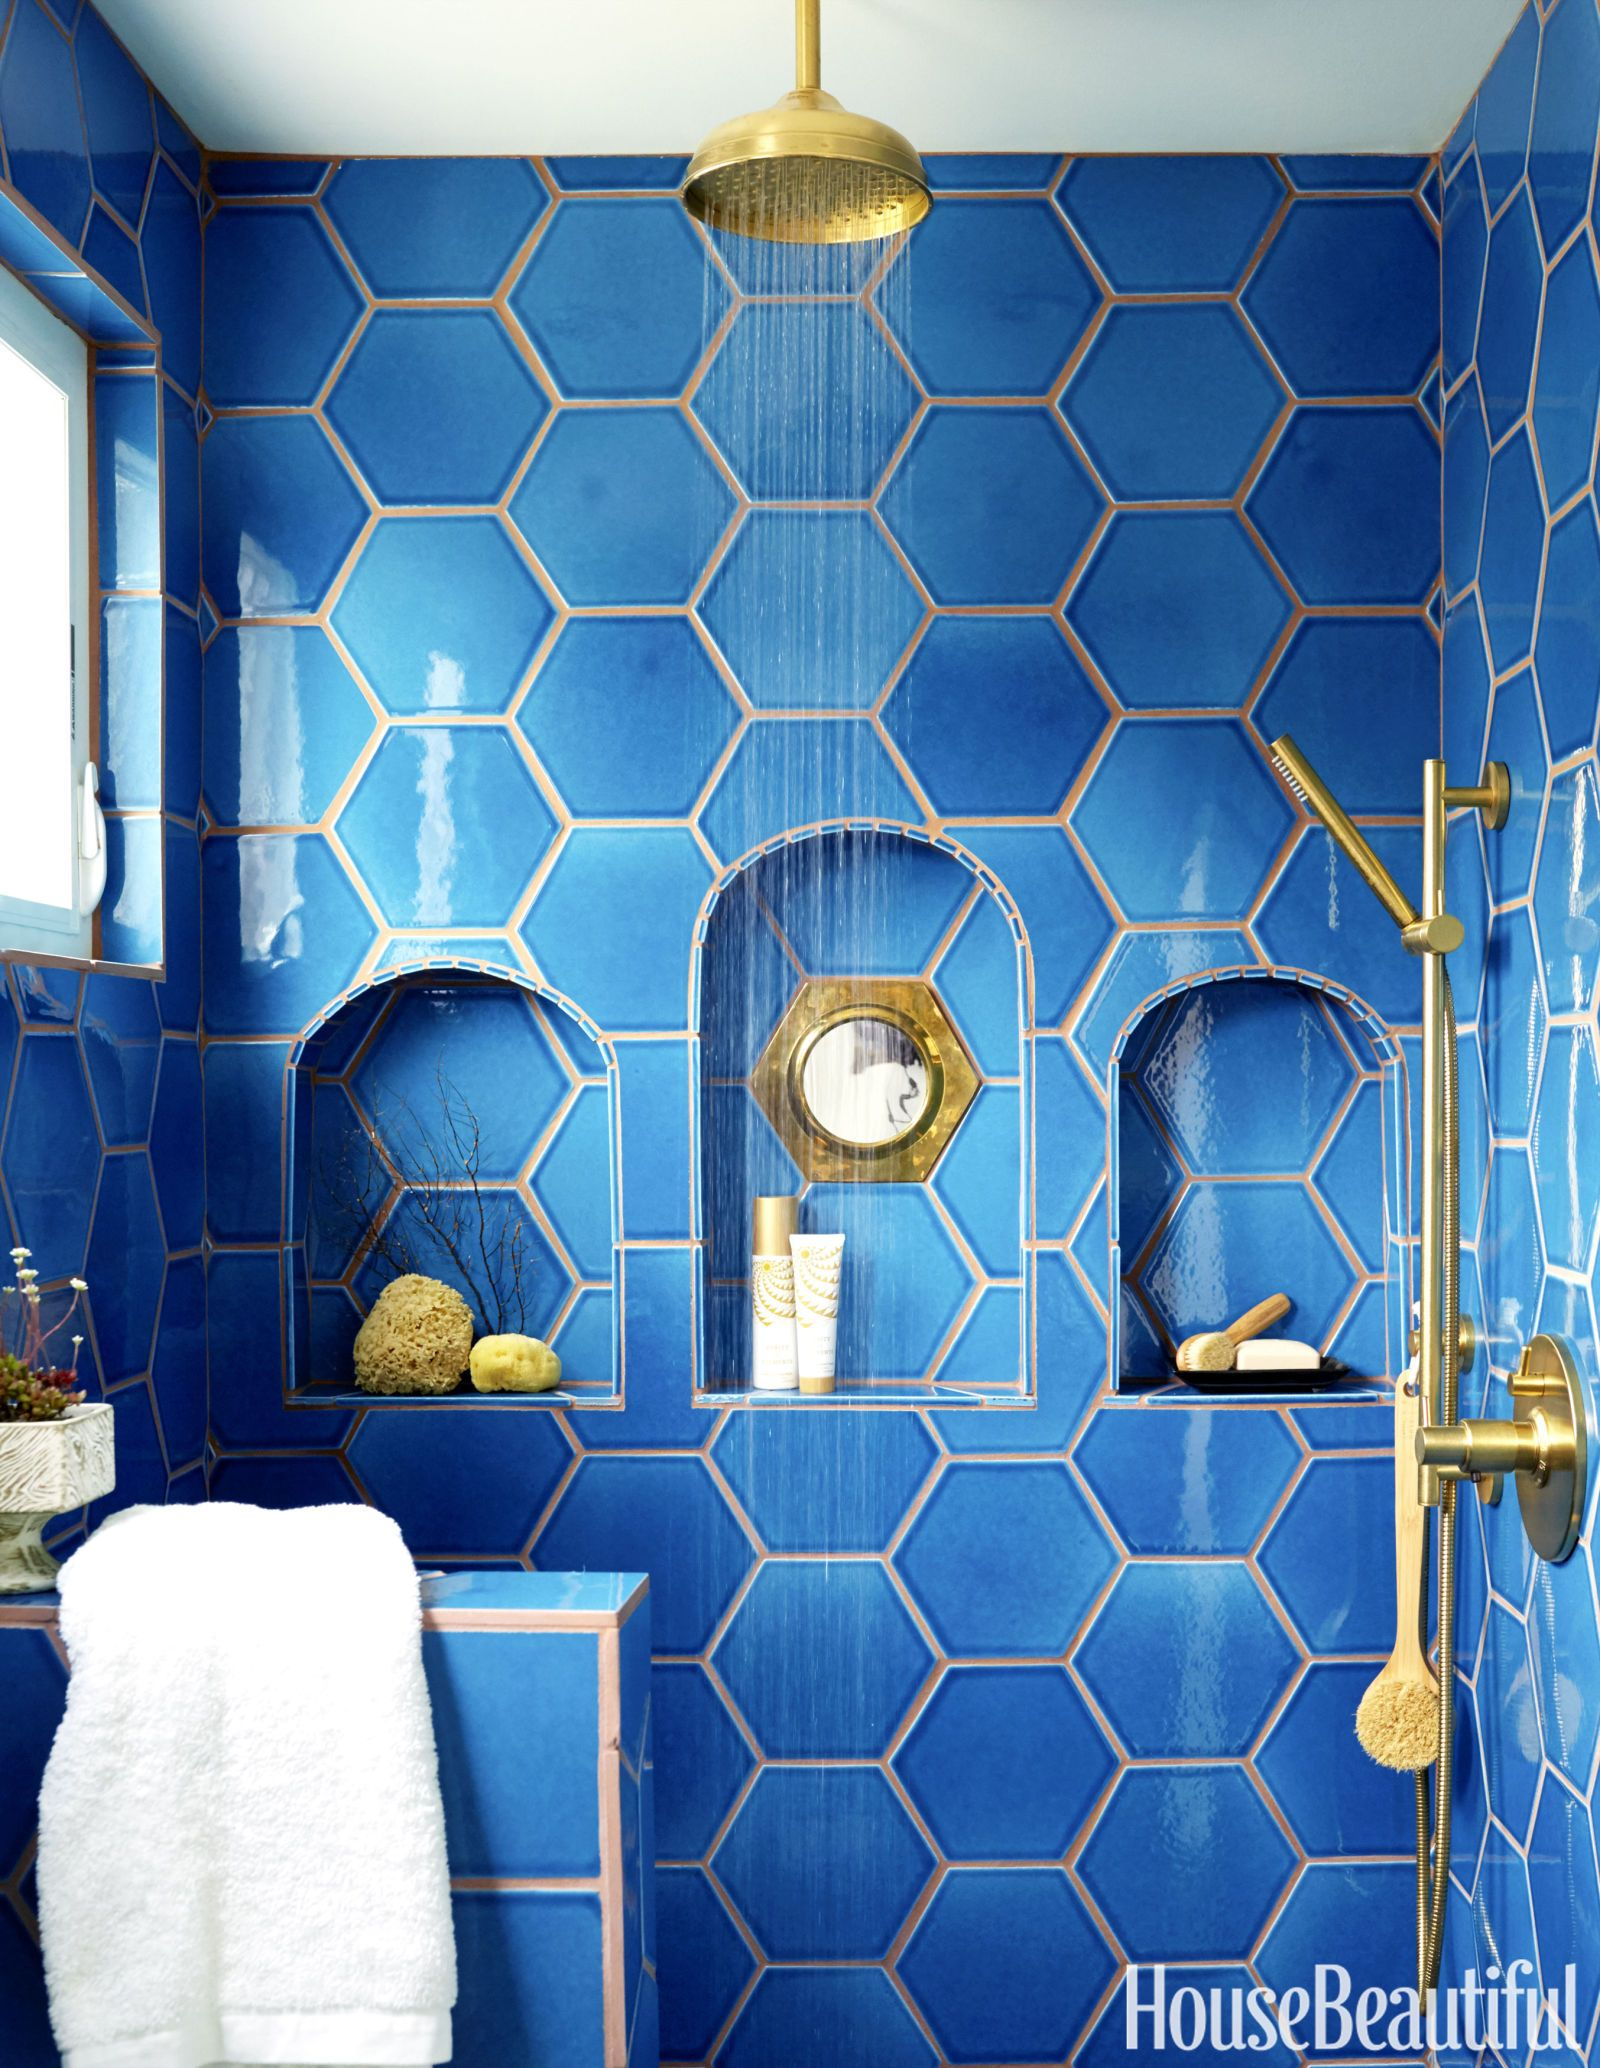 12 Colorful Bathrooms That Are Just Pure Happy | Bathe | Pinterest ...